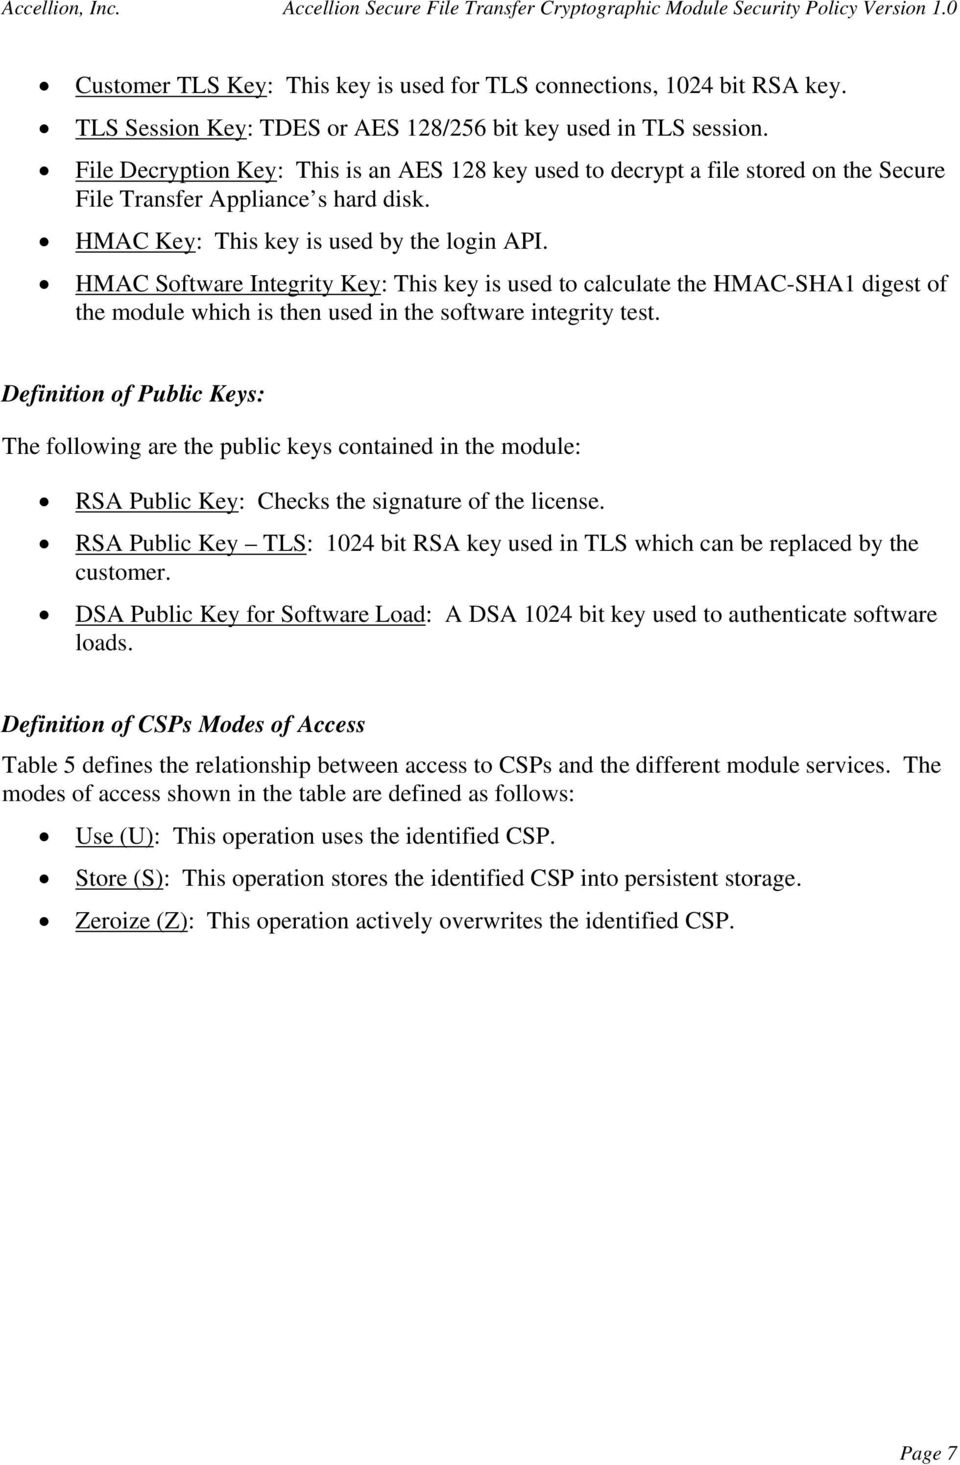 HMAC Software Integrity Key: This key is used to calculate the HMAC-SHA1 digest of the module which is then used in the software integrity test.